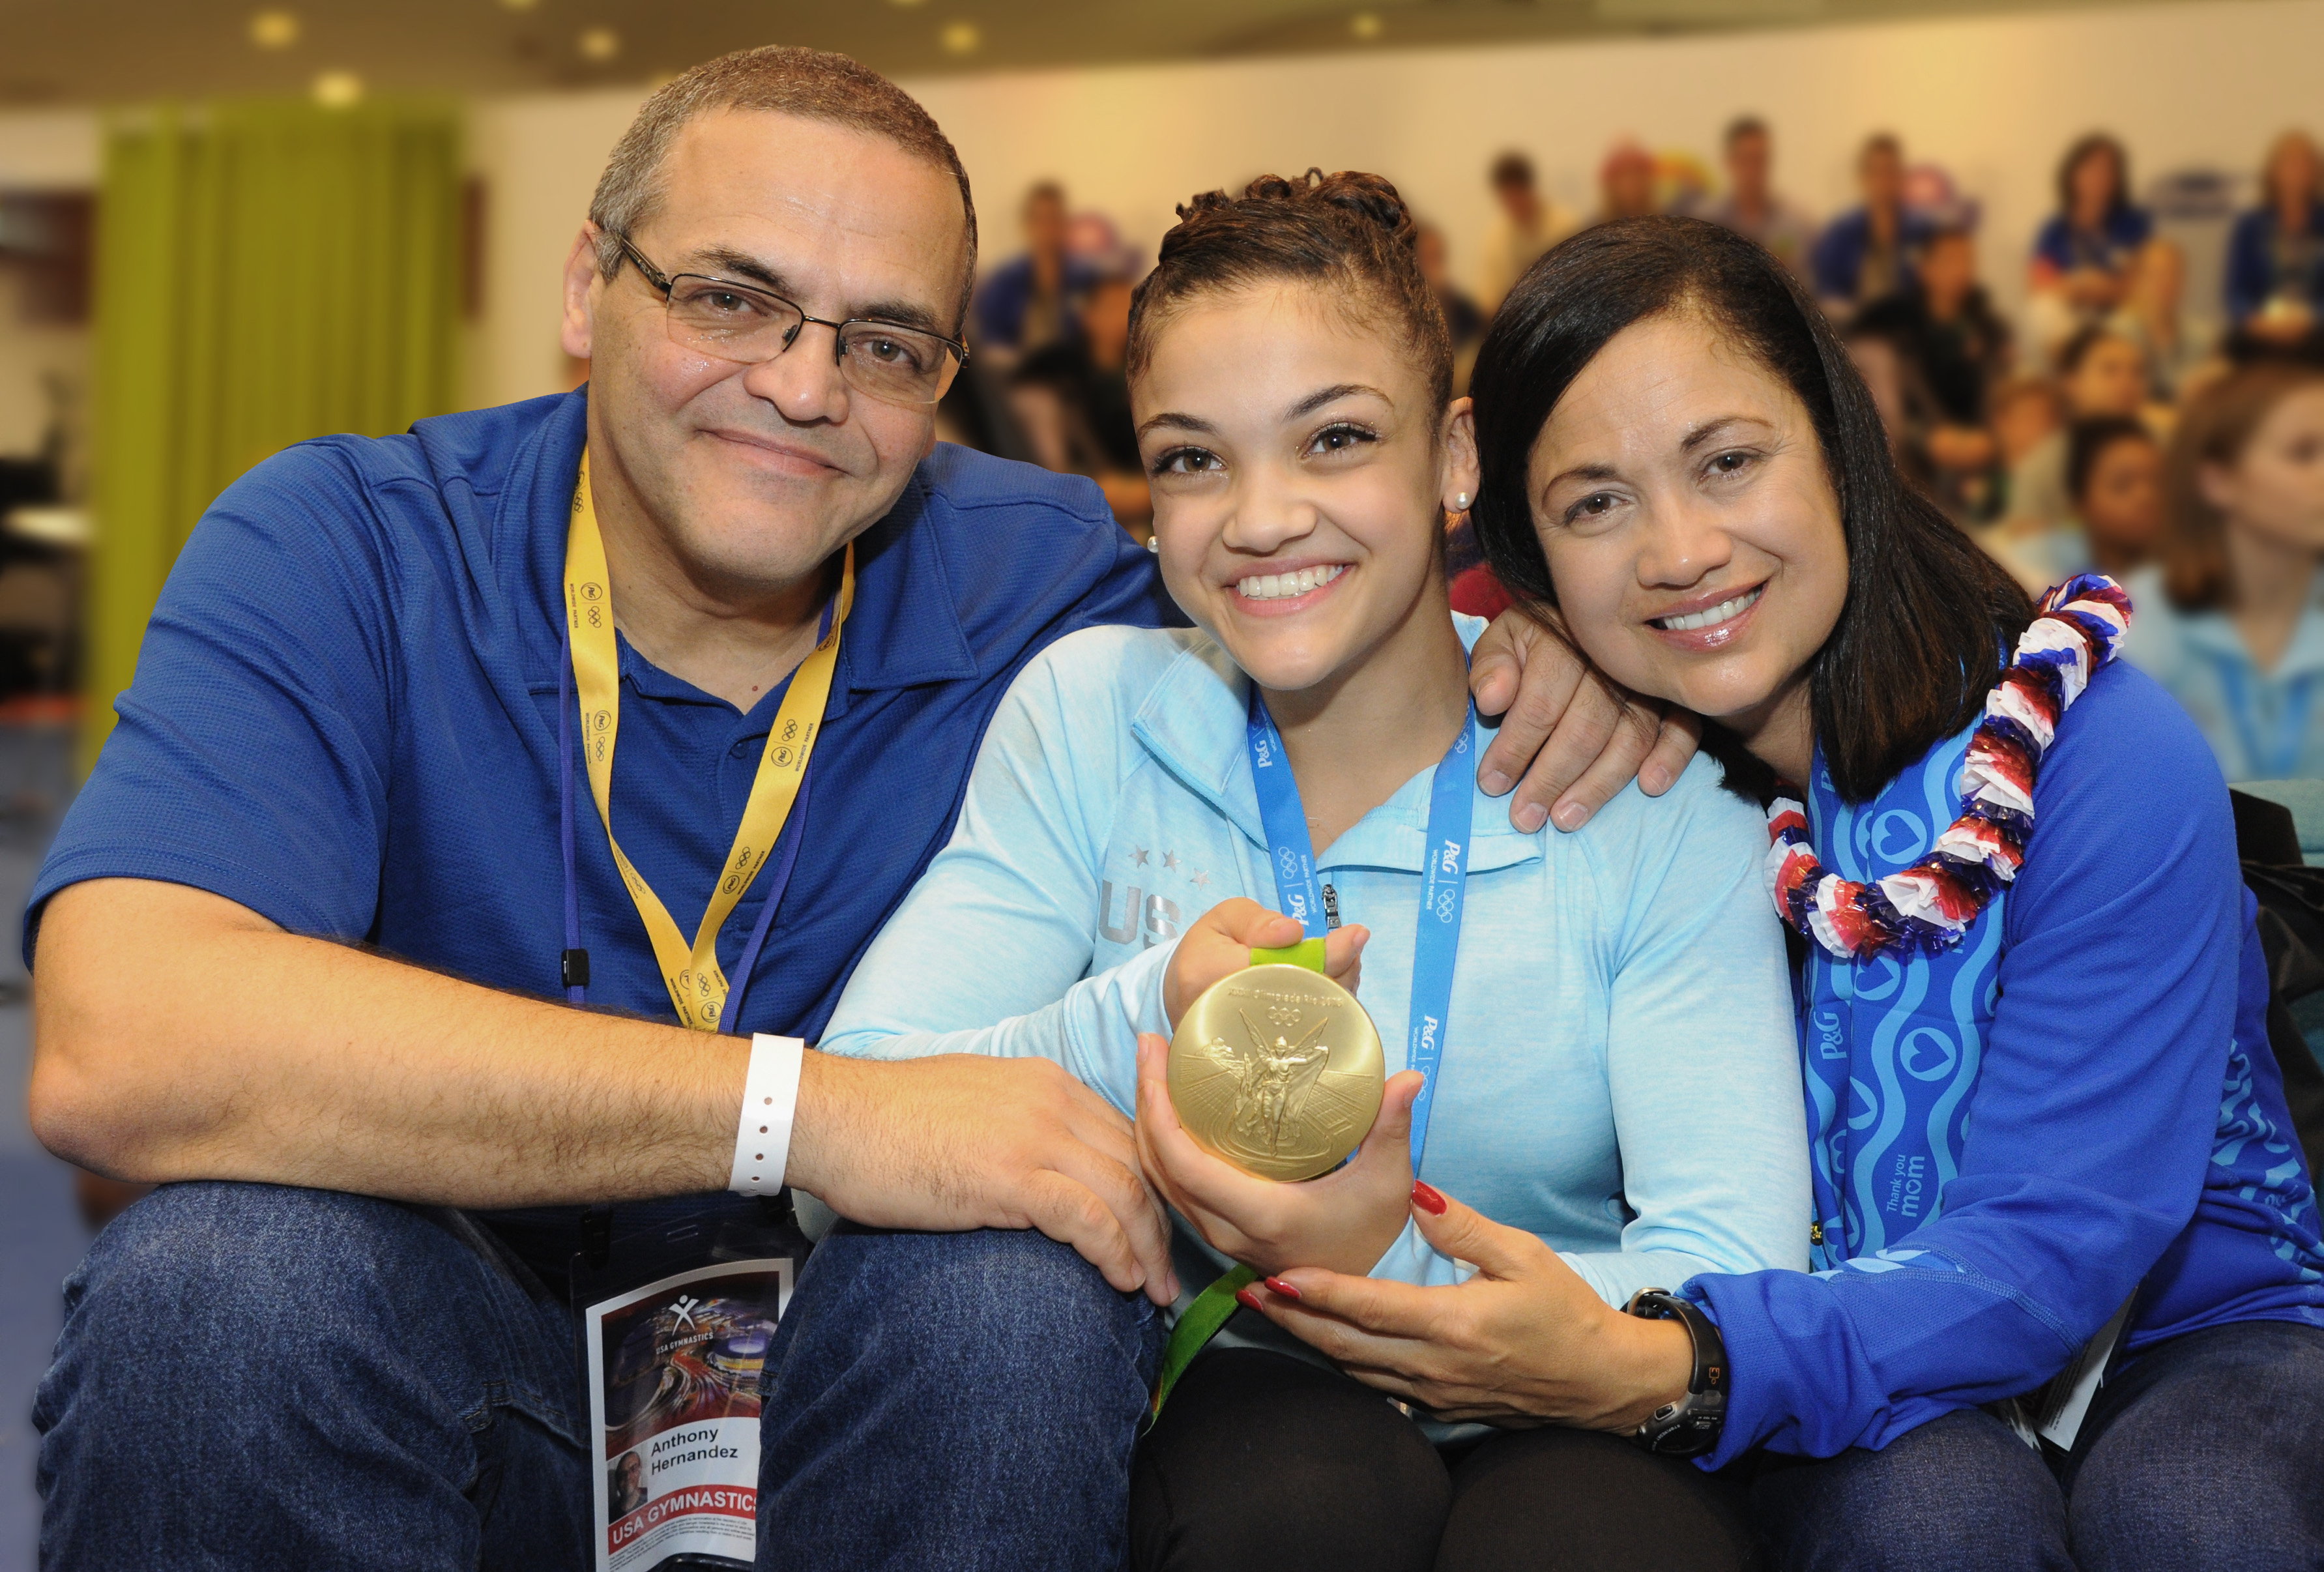 Laurie hernandez procter and gamble casino luzern poker